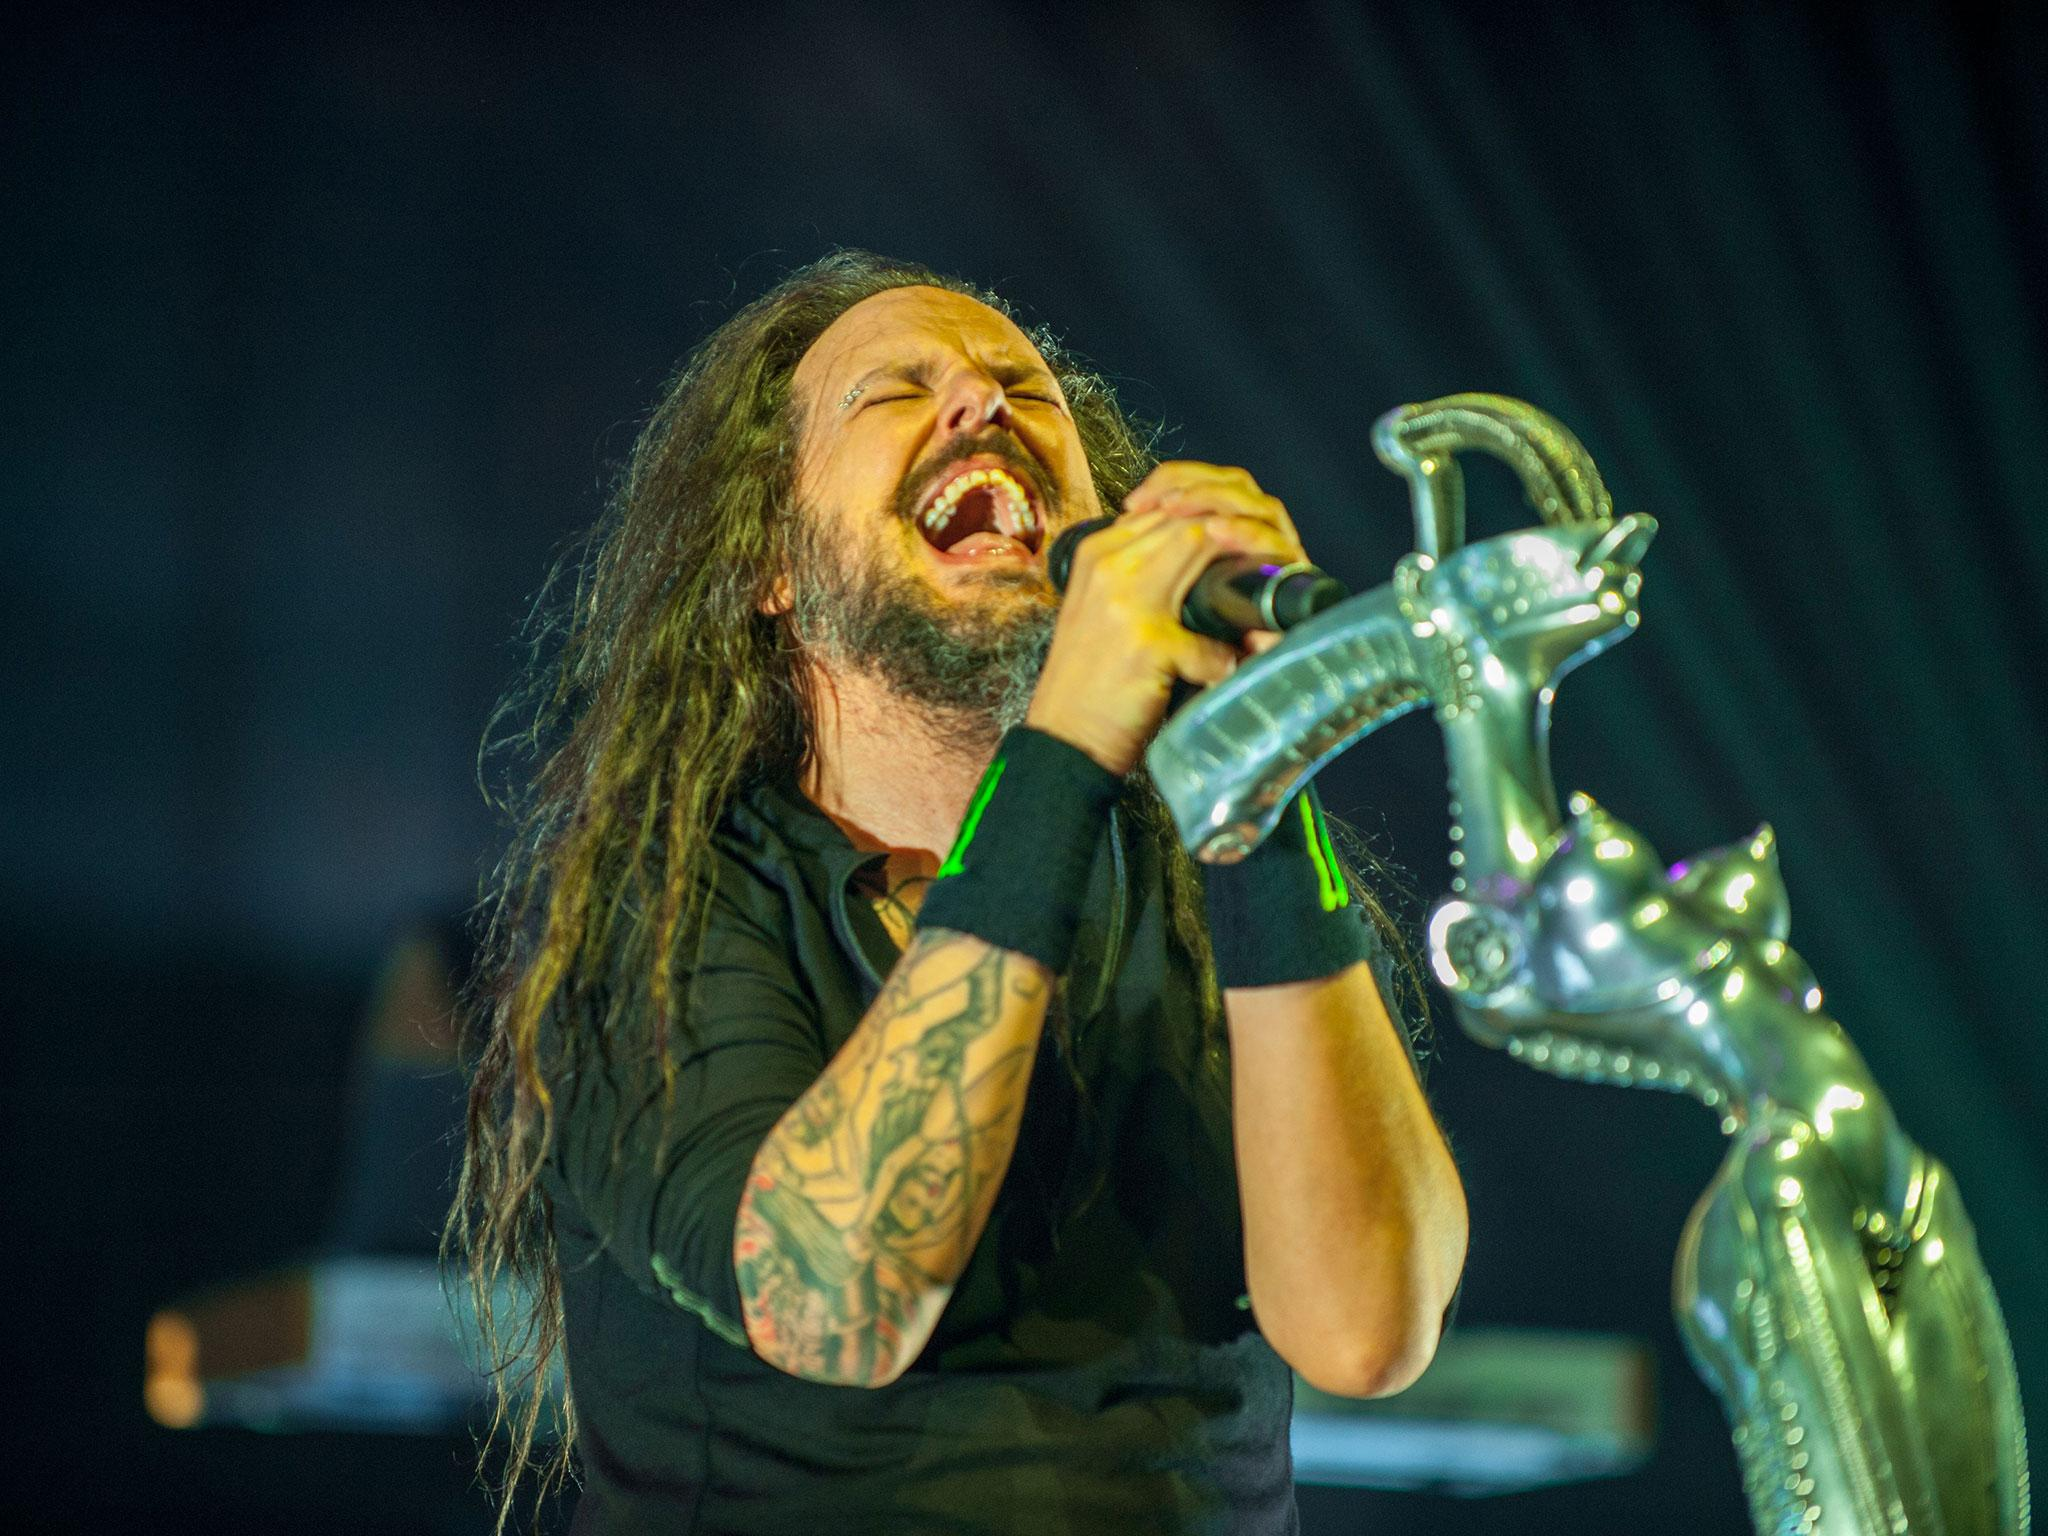 Korn and Limp Bizkit, Wembley Arena, gig review: Two Titans of nu-metal bring the party like it's 1999